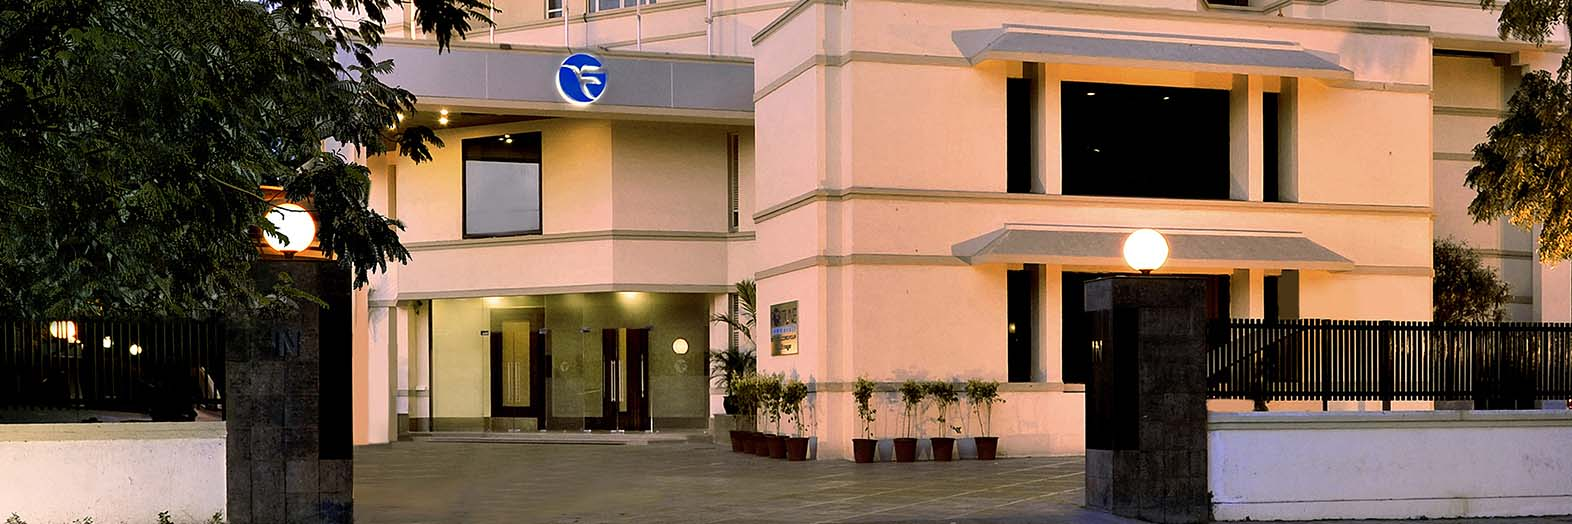 Hotels in Gandhinagar - Fortune Inn Haveli